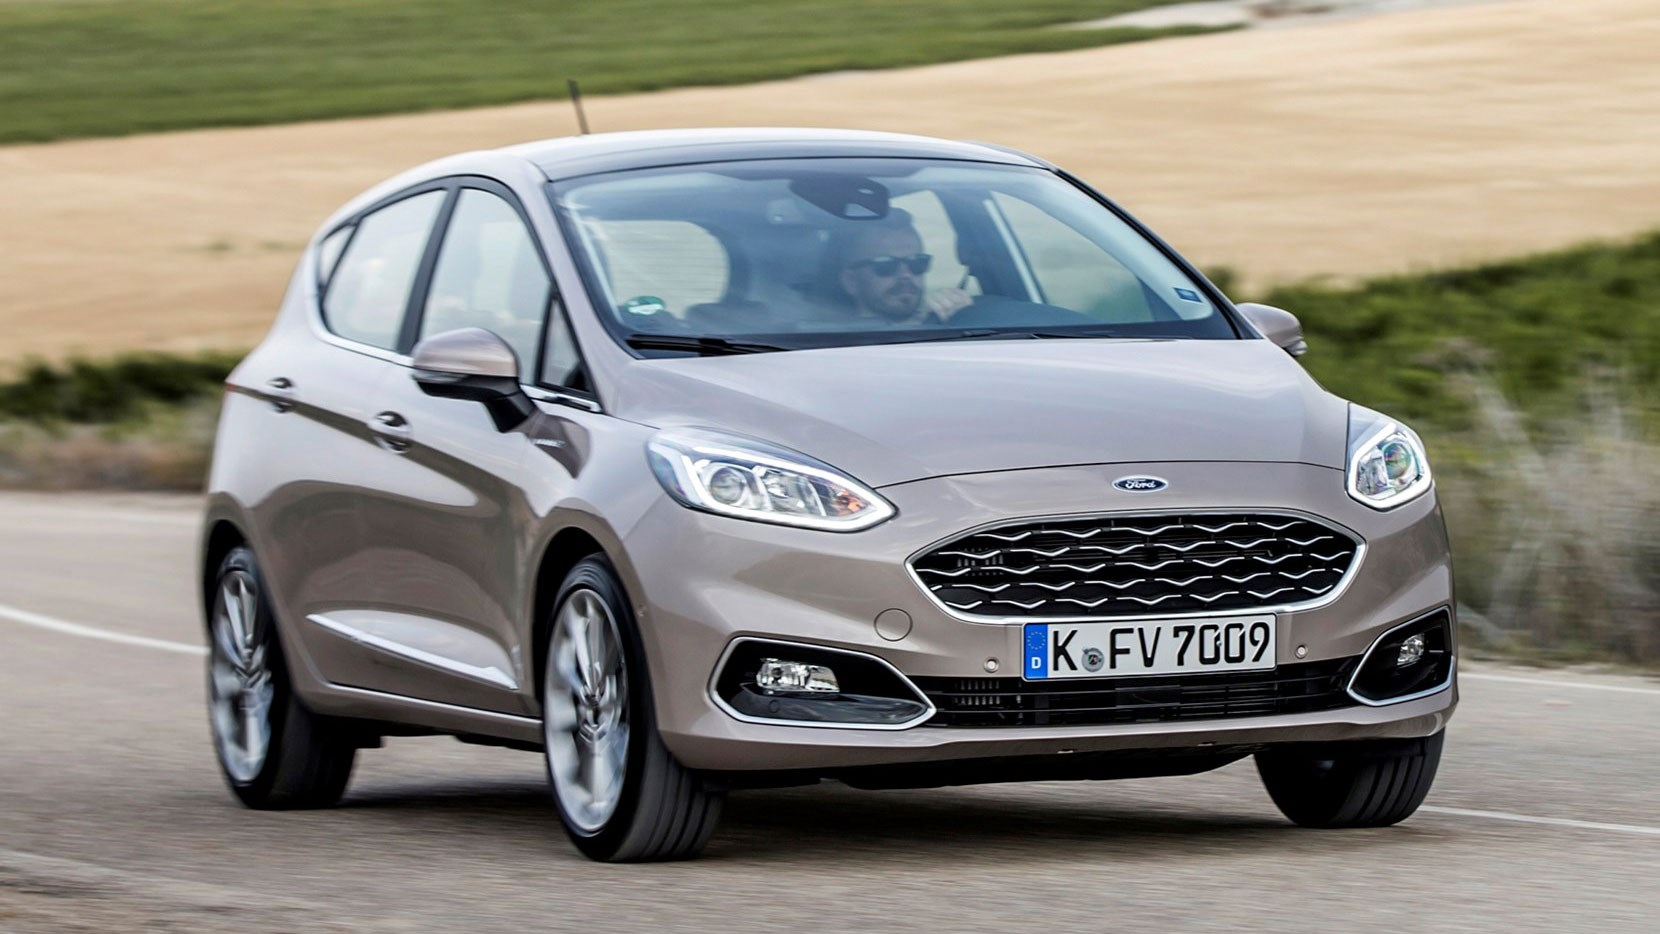 ford fiesta vignale 2017 review by car magazine autos post. Black Bedroom Furniture Sets. Home Design Ideas